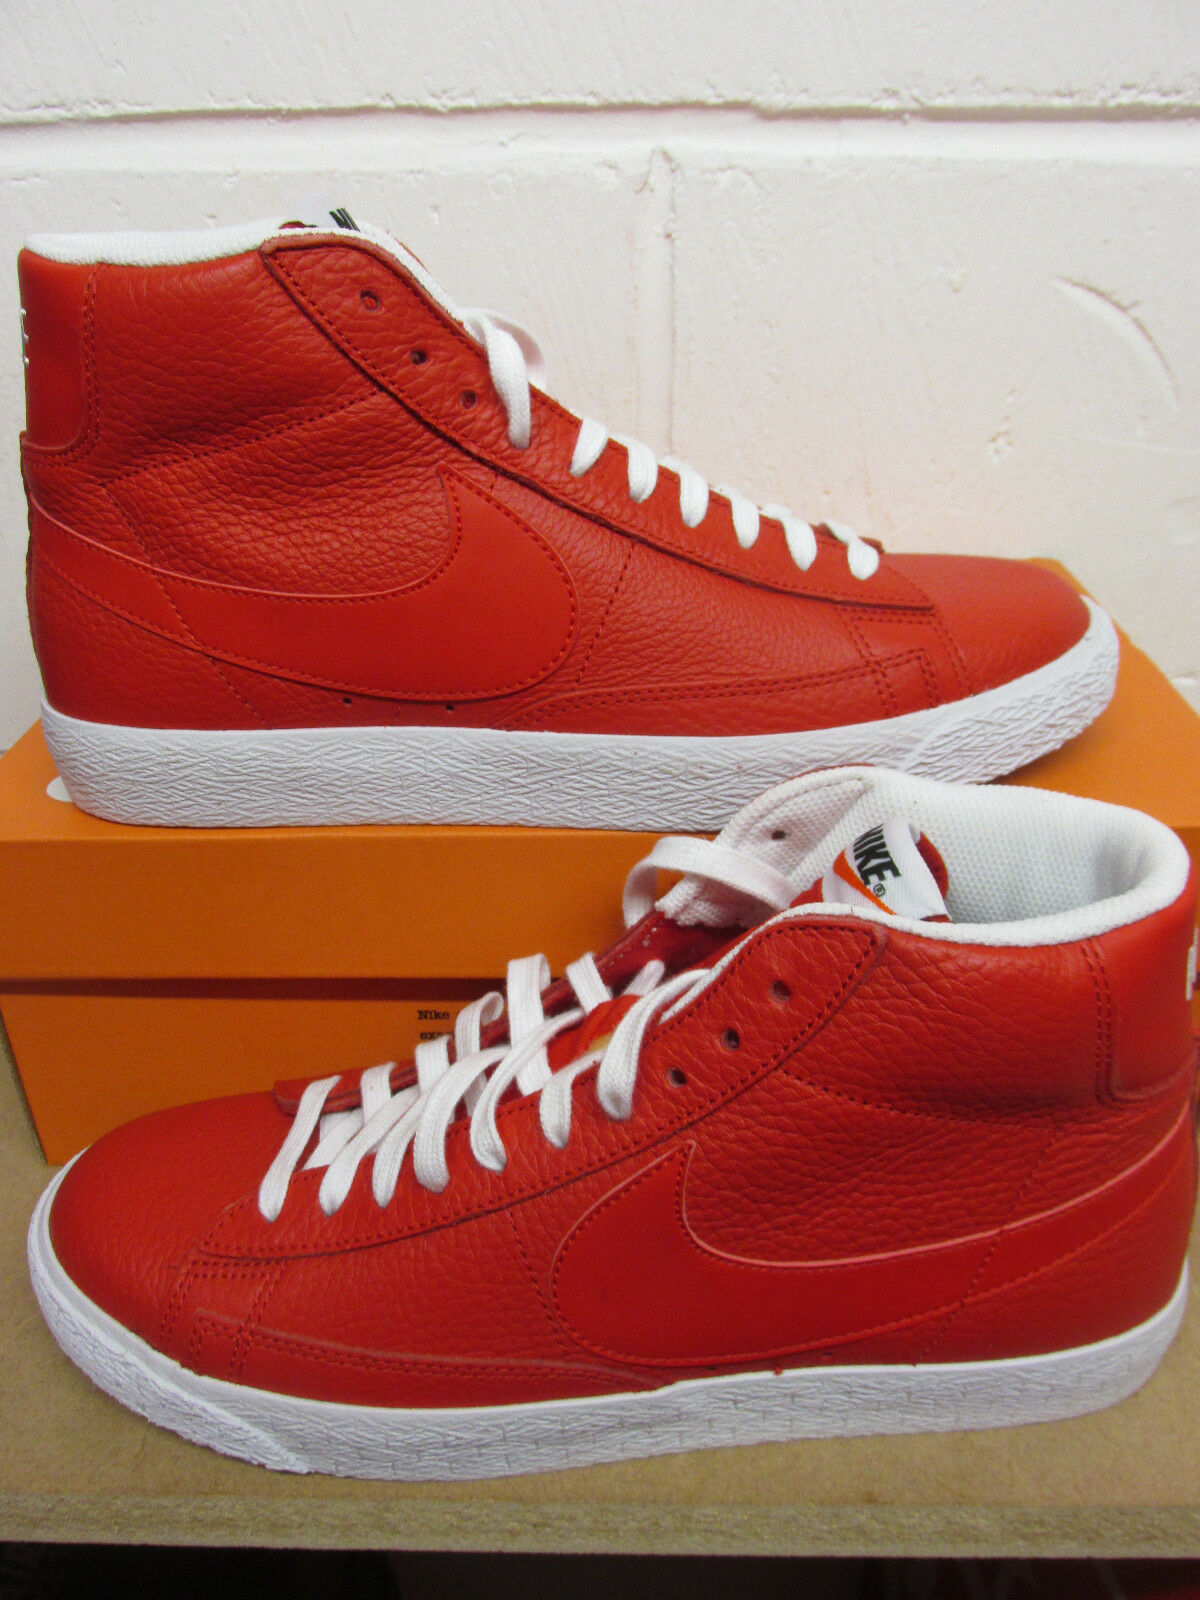 Nike blazer mid PRM mens hi top trainers 429988 604 sneakers shoes